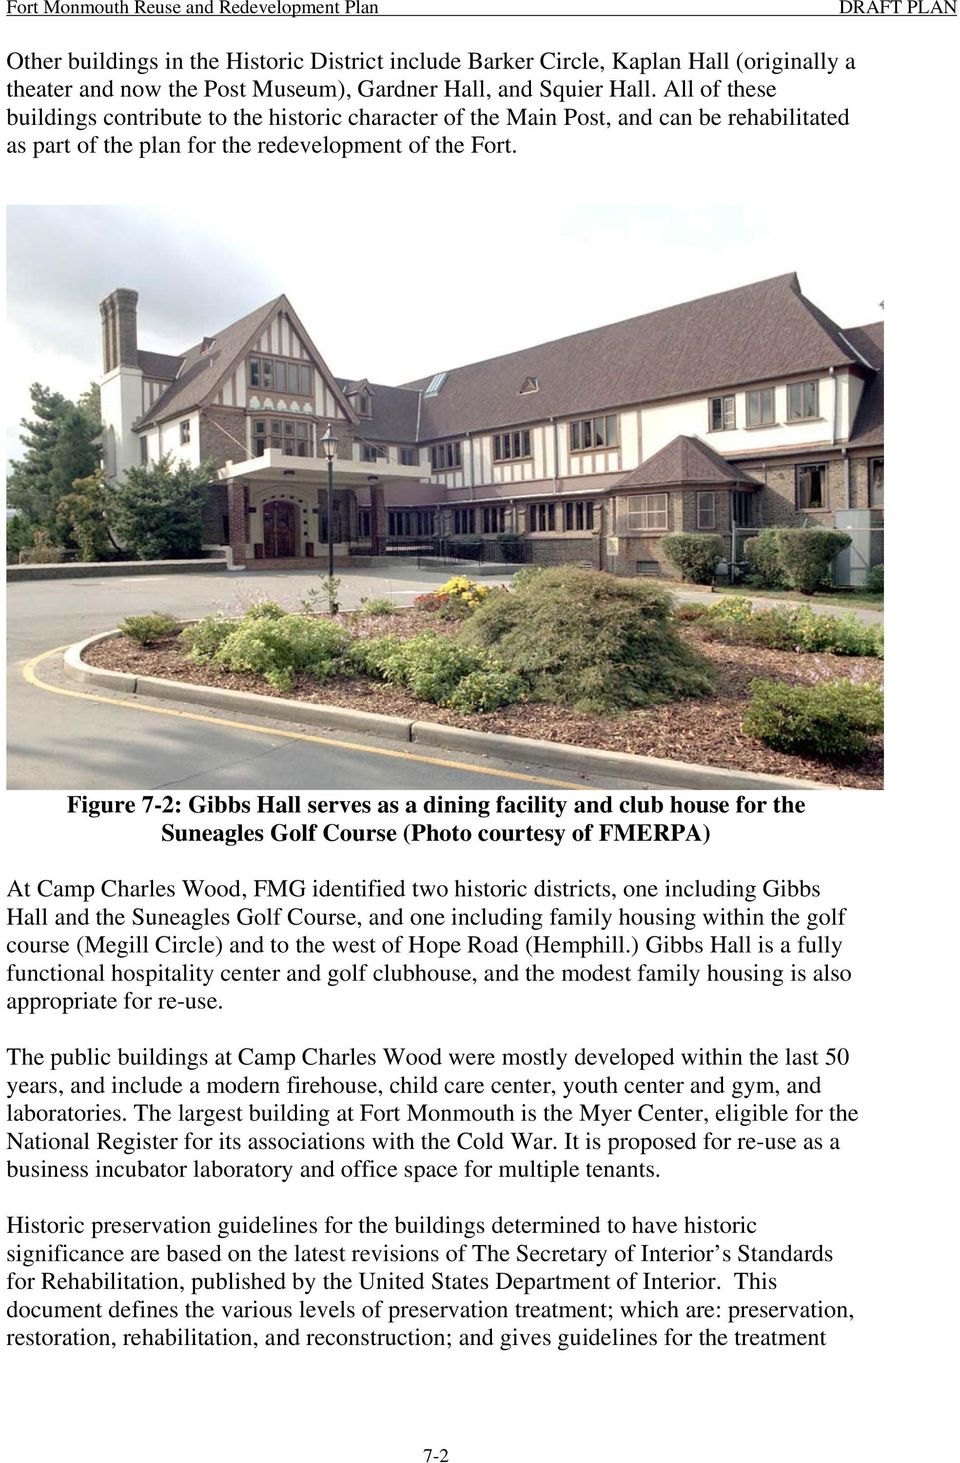 Figure 7-2: Gibbs Hall serves as a dining facility and club house for the Suneagles Golf Course (Photo courtesy of FMERPA) At Camp Charles Wood, FMG identified two historic districts, one including